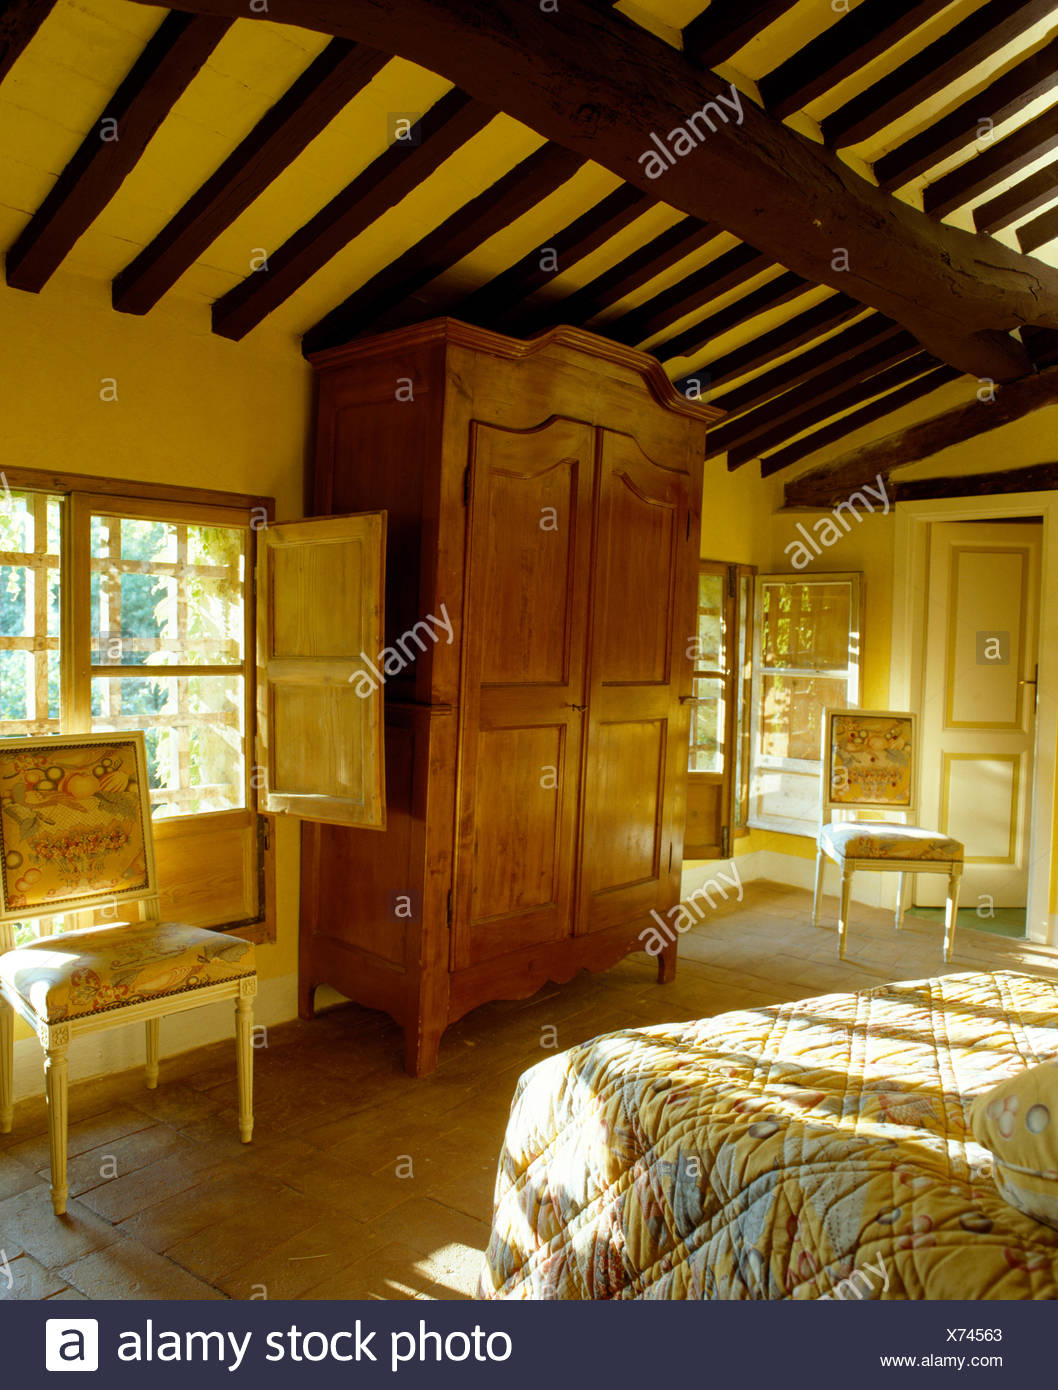 Large Antique Wardrobe And Beamed Ceiling In Sunlit Tuscan